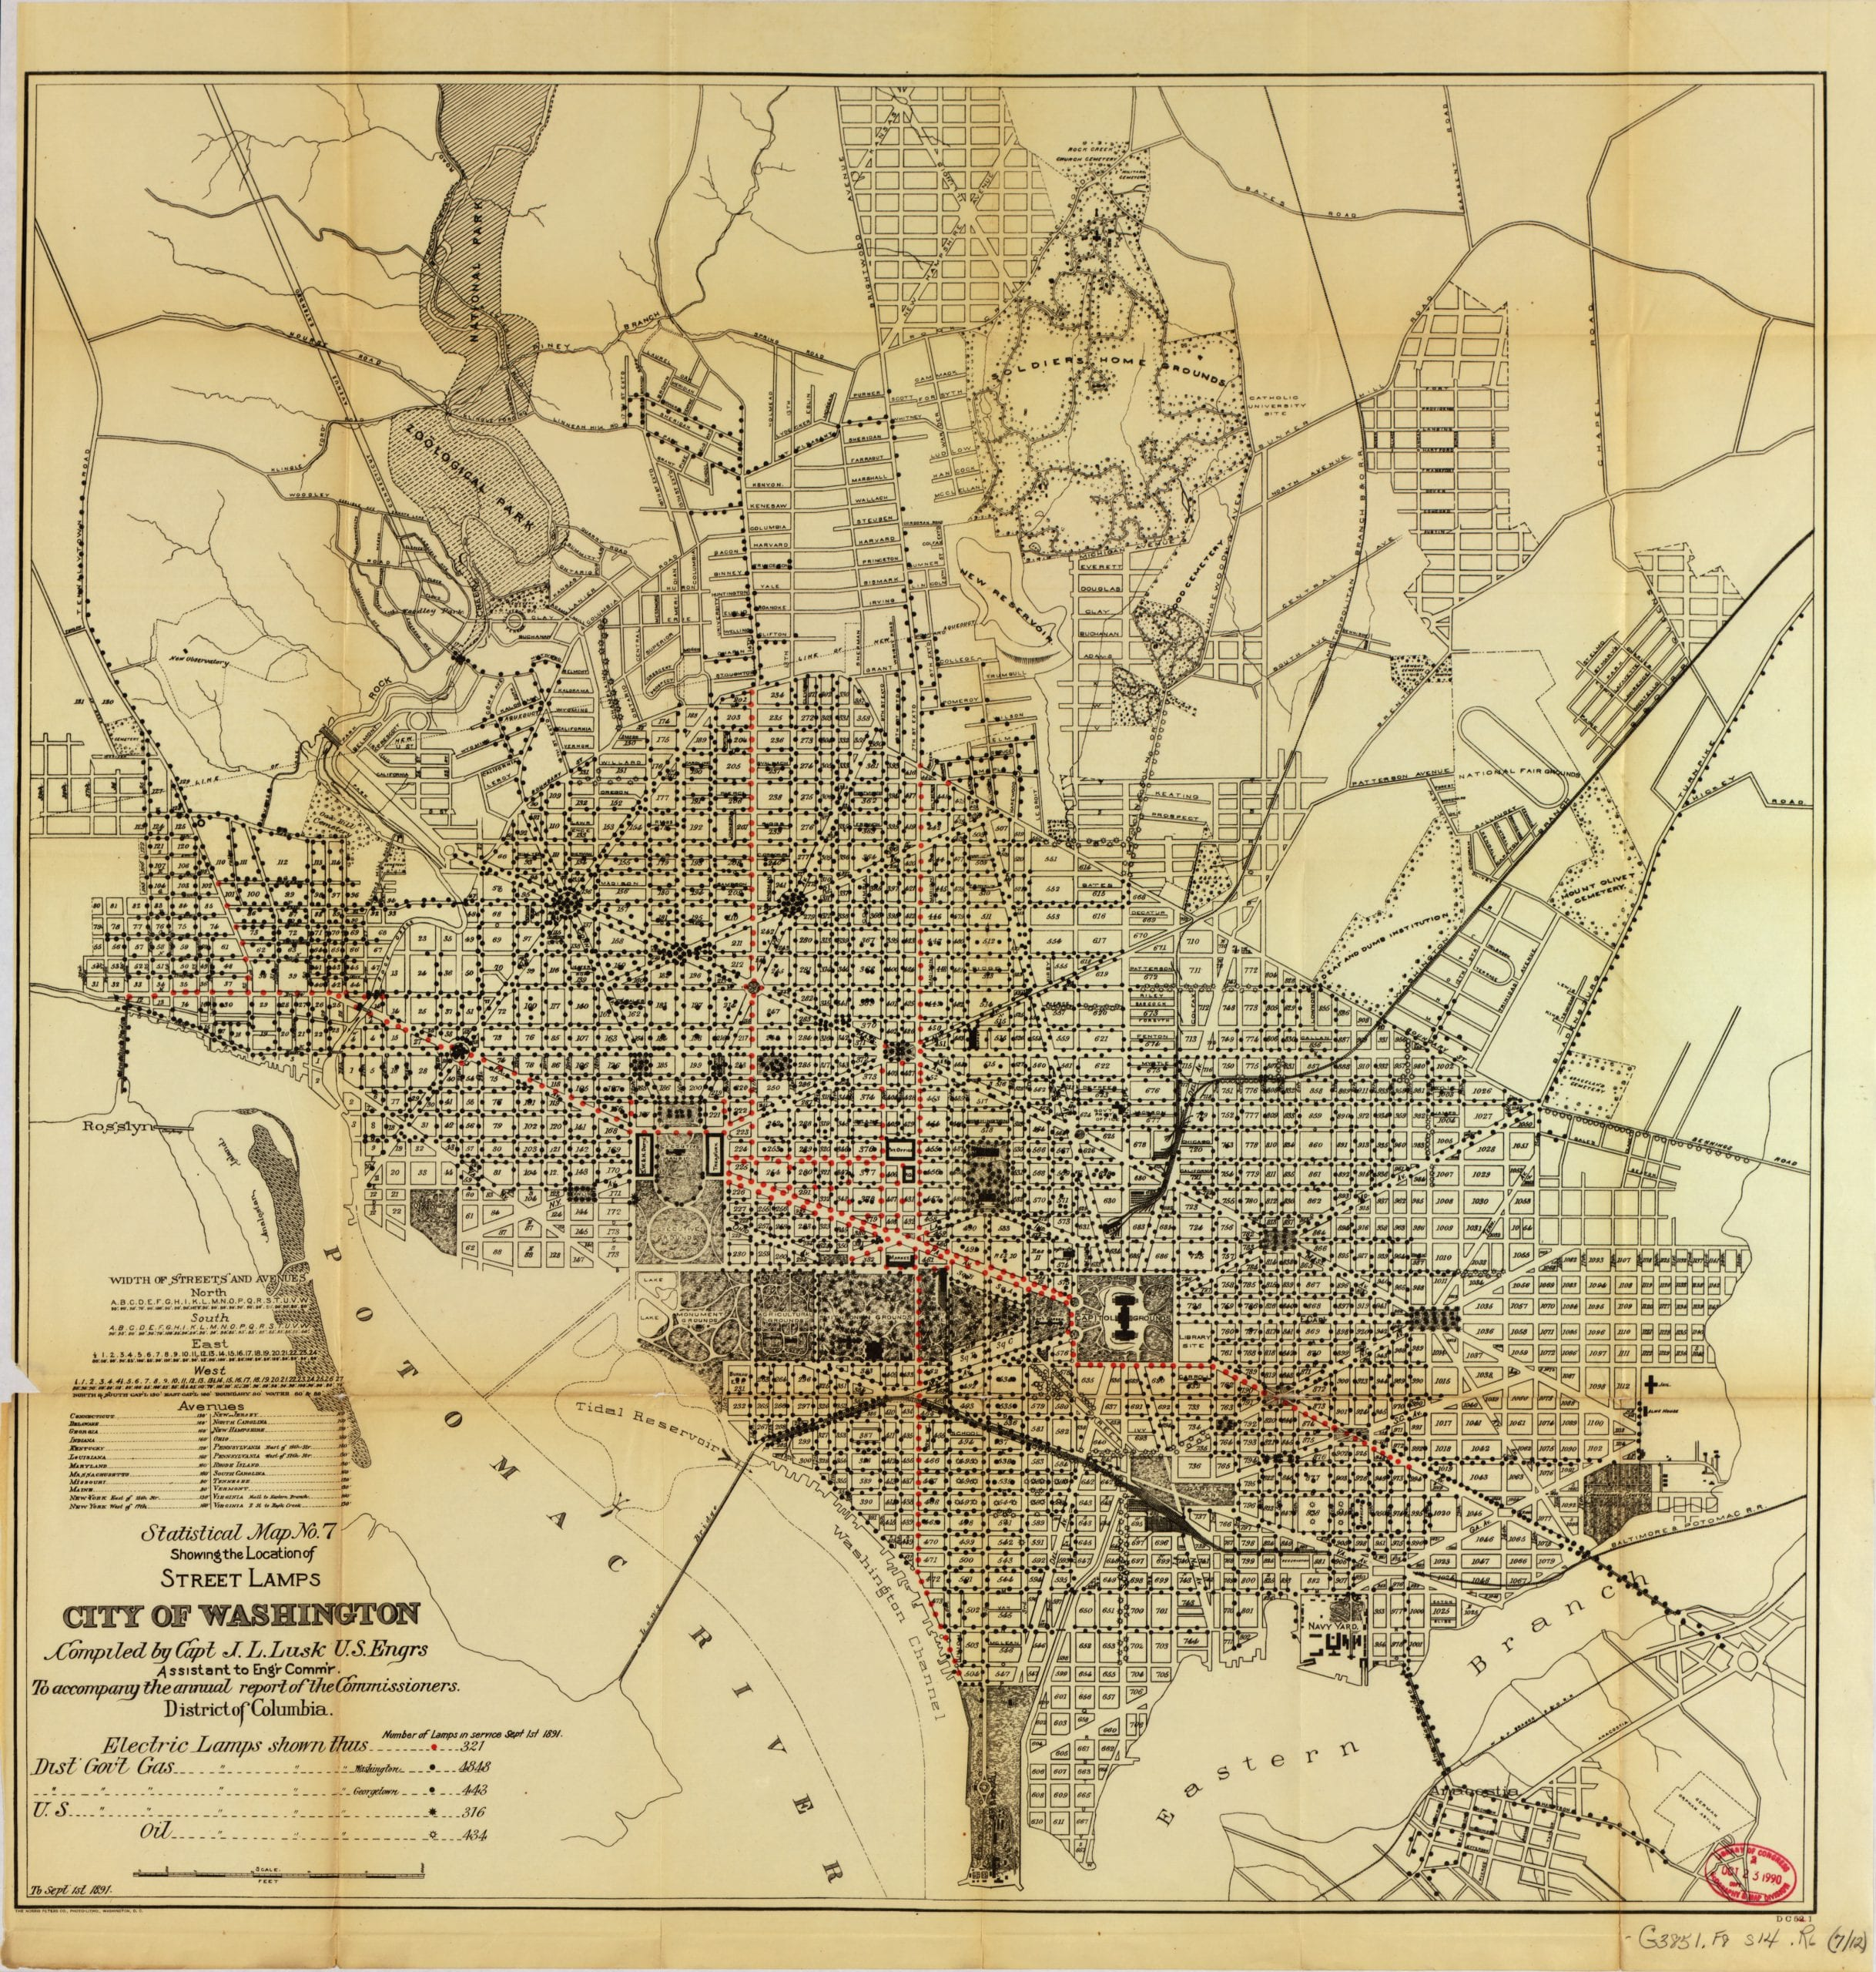 1891 Map of Washington's Street Lamps